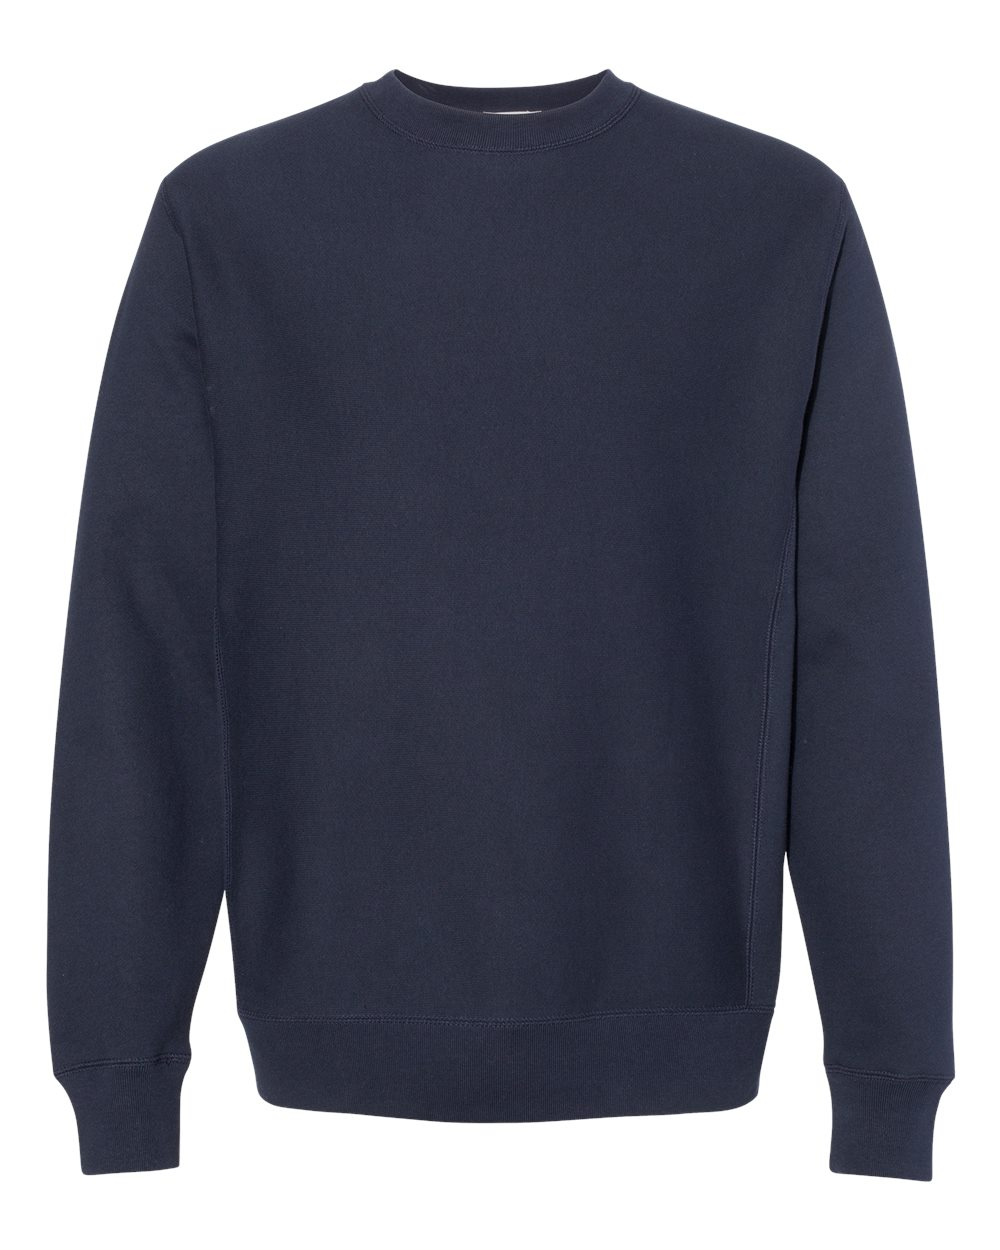 Independent-Trading-Co-Mens-Premium-Heavyweight-Cross-Grain-Sweatshirt-IND5000C thumbnail 15